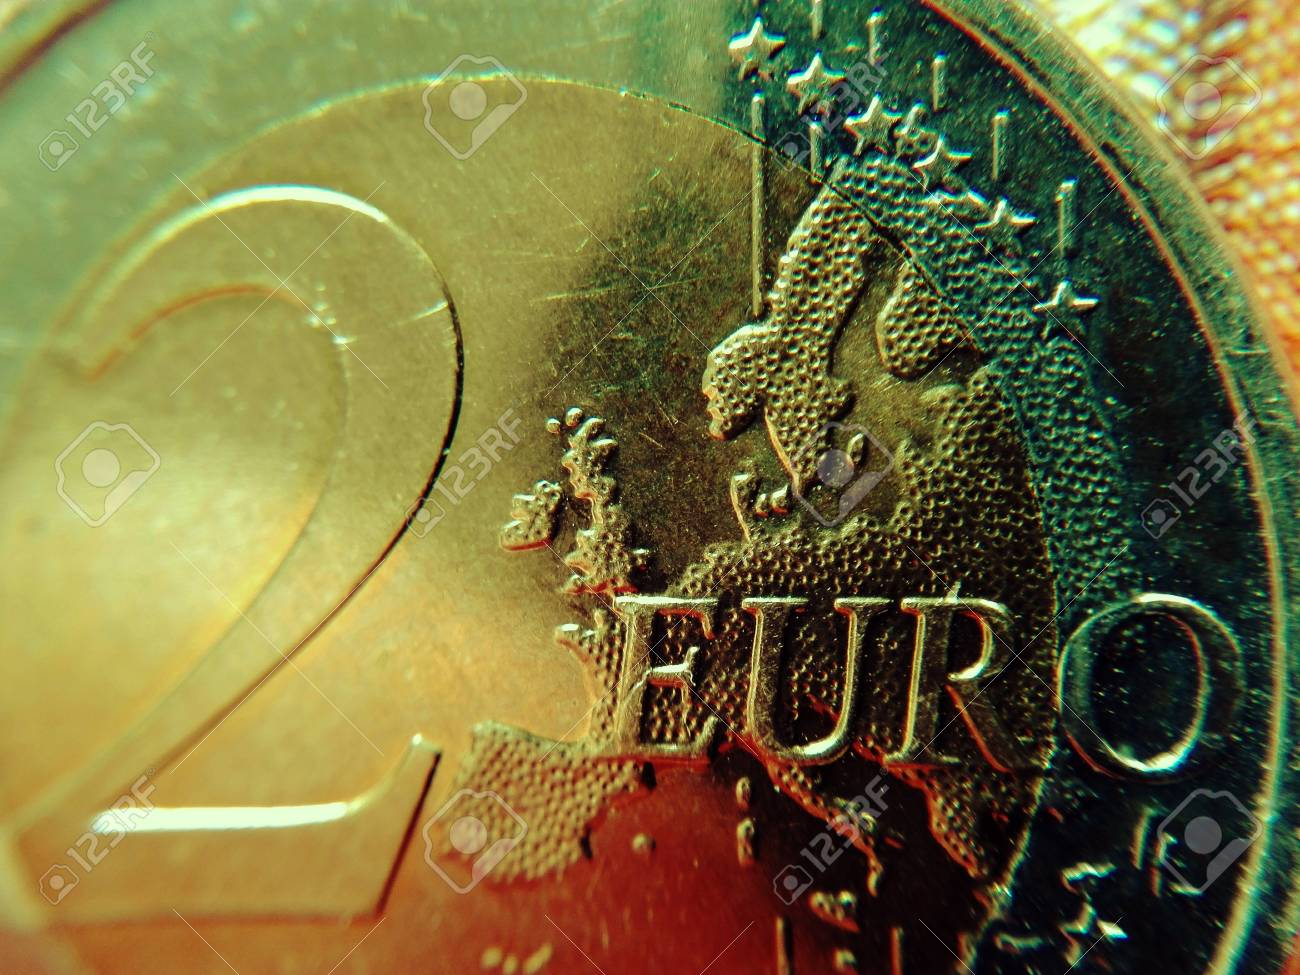 Europe on the two-euro coin - The euro card of a euro coin as a cut-out. - 82983122